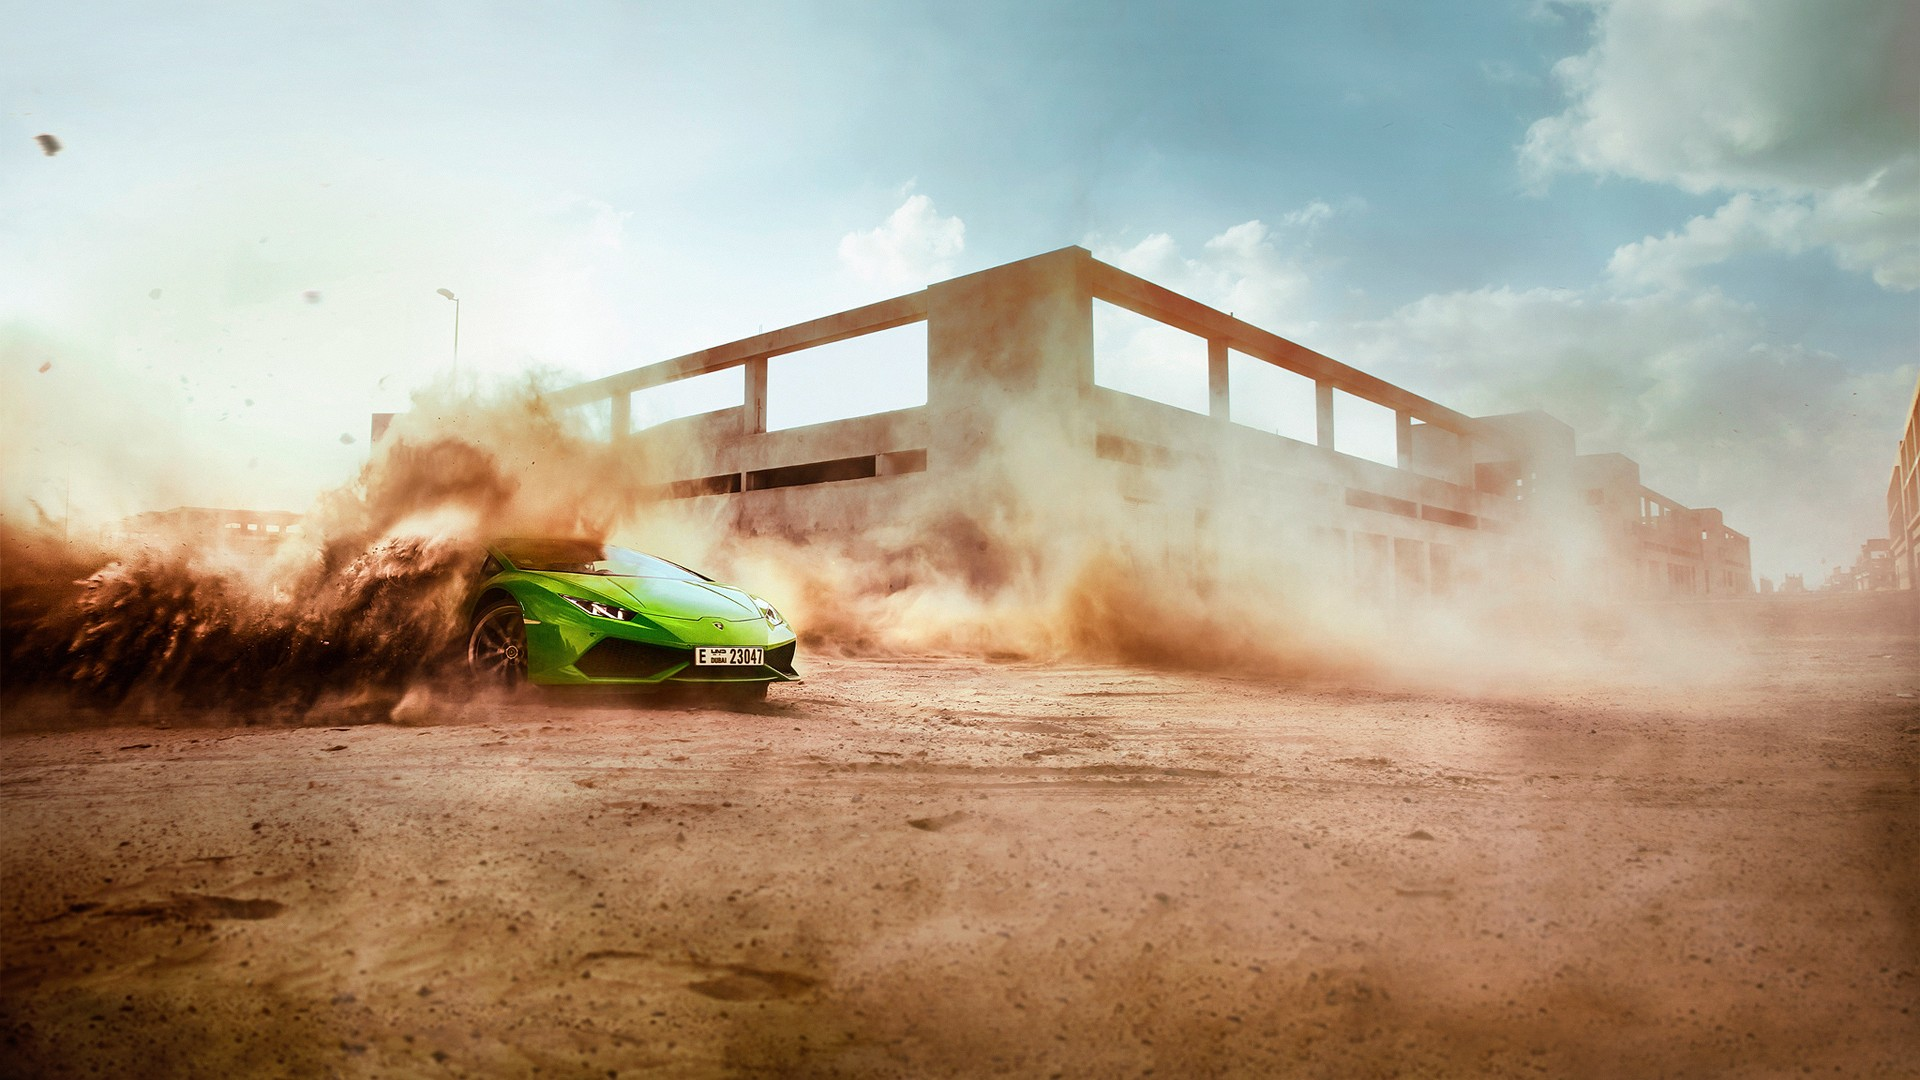 Car 5760x1080 Wallpaper Car Dust Lamborghini Racing Wallpapers Hd Desktop And